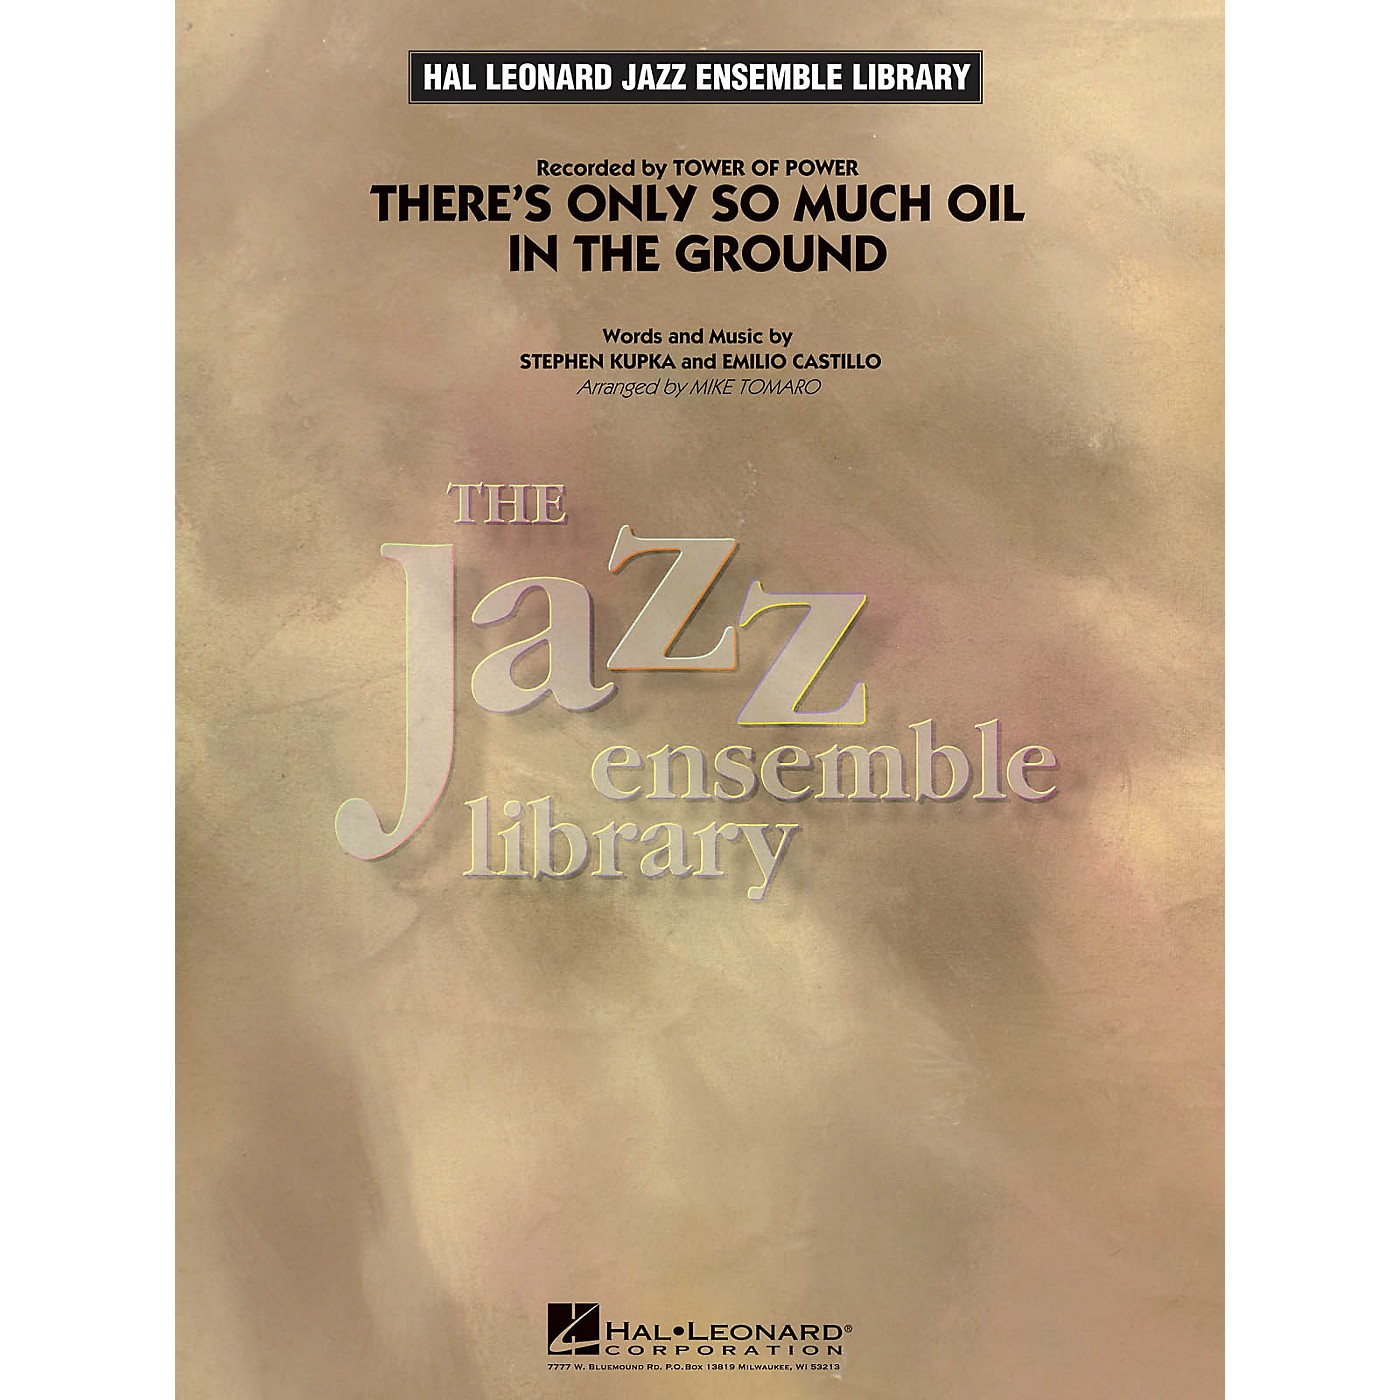 Hal Leonard There's Only So Much Oil in the Ground Jazz Band Level 4 Arranged by Mike Tomaro thumbnail